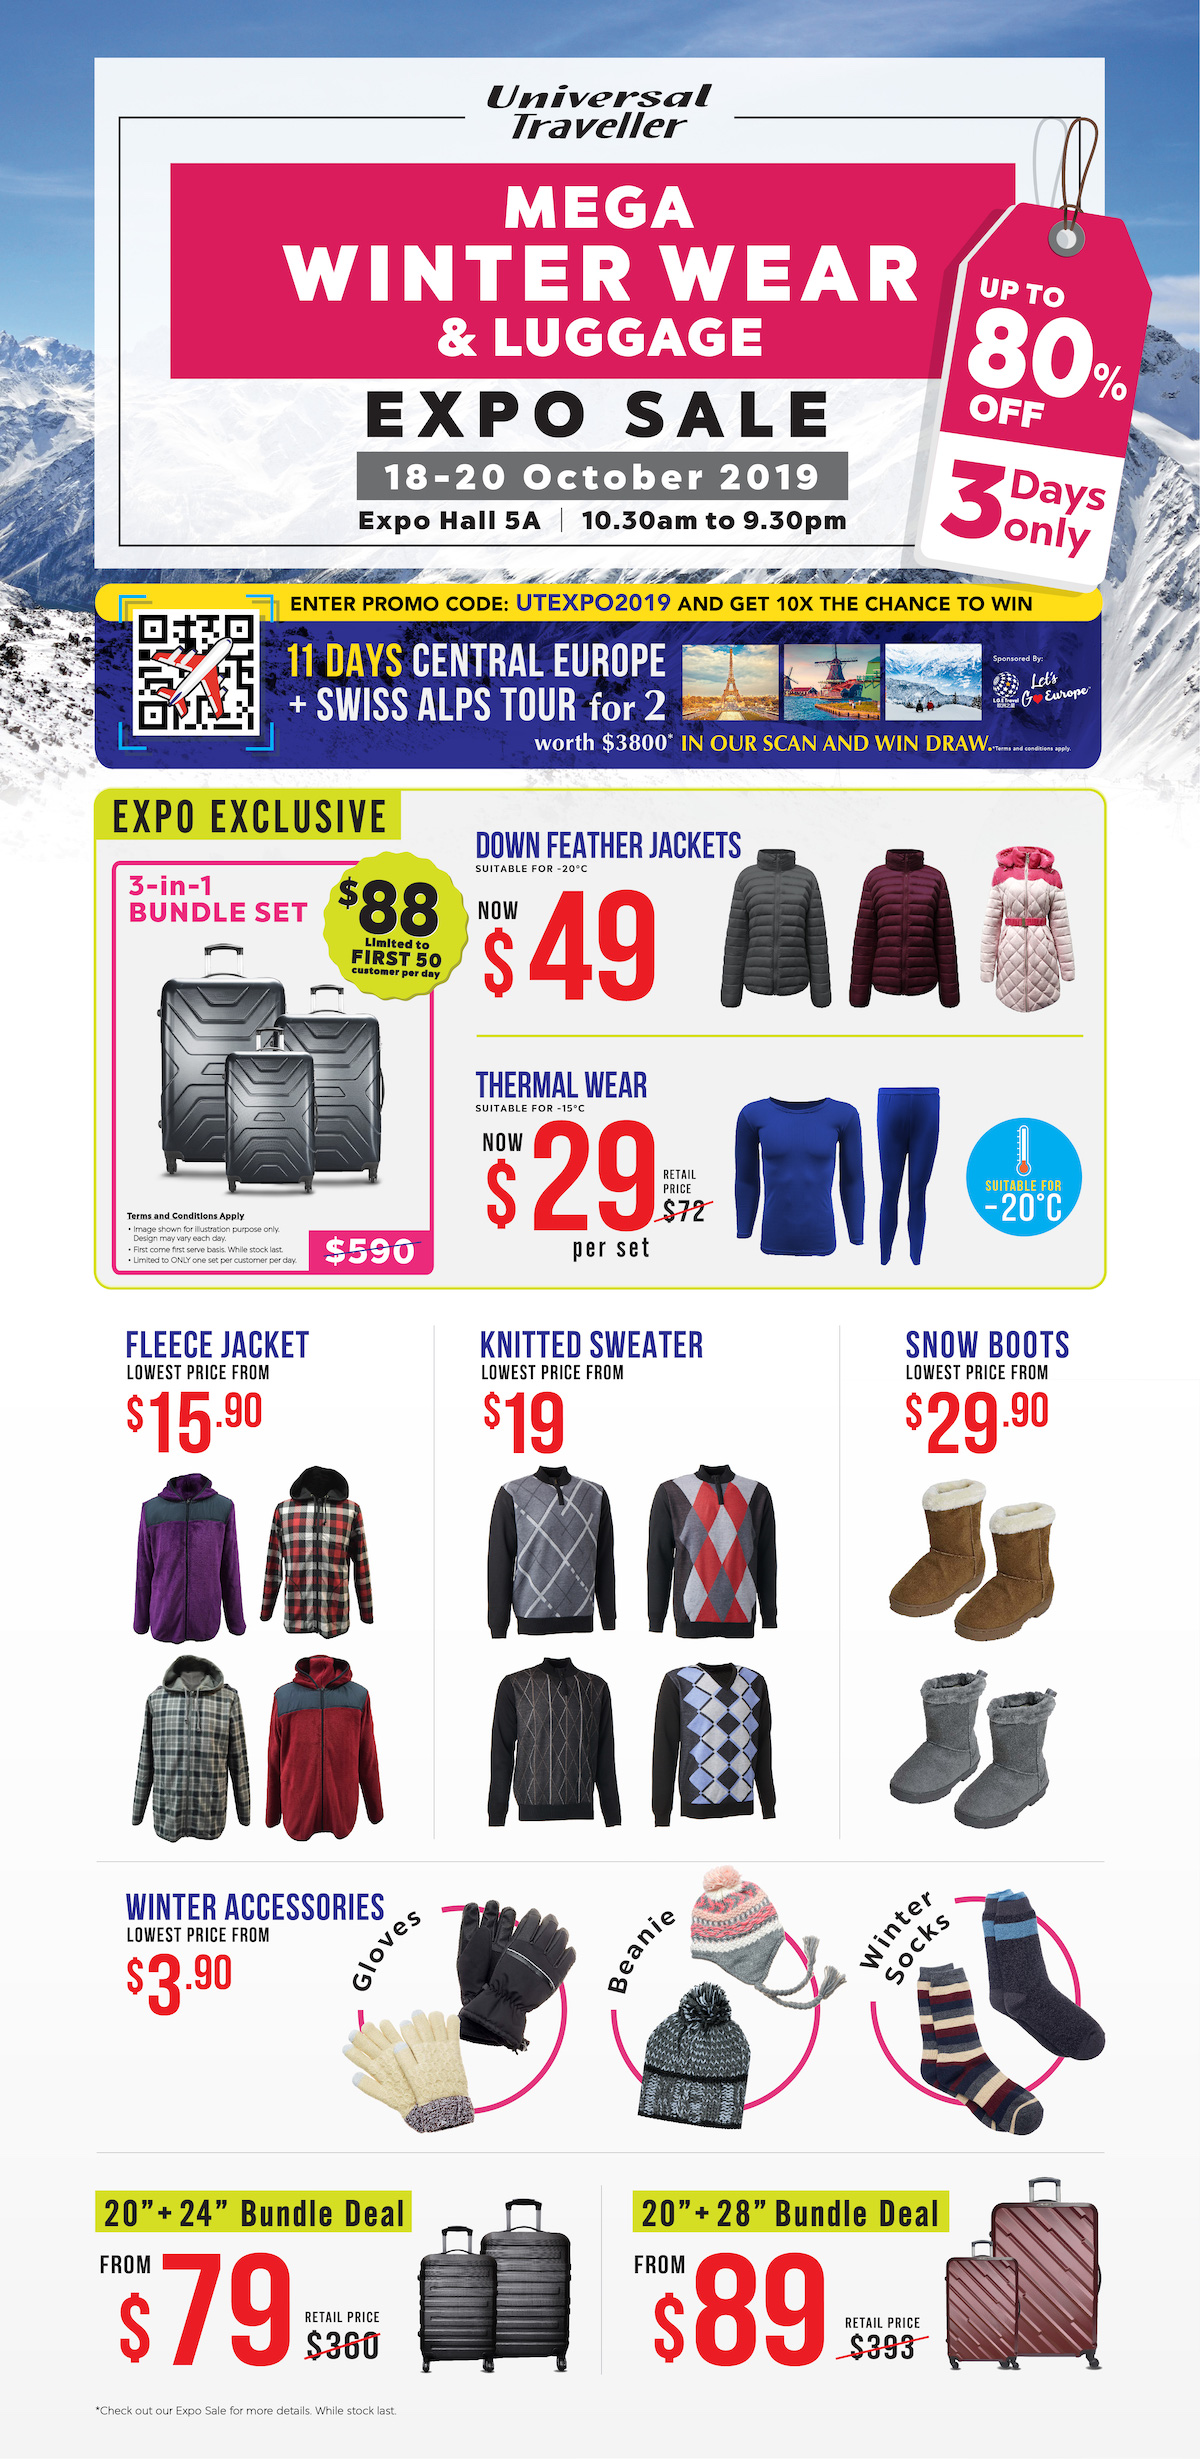 Universal Traveller Singapore Mega Winter Wear & Luggage Expo Sale from 18-20 Oct 2019   Why Not Deals 6 & Promotions